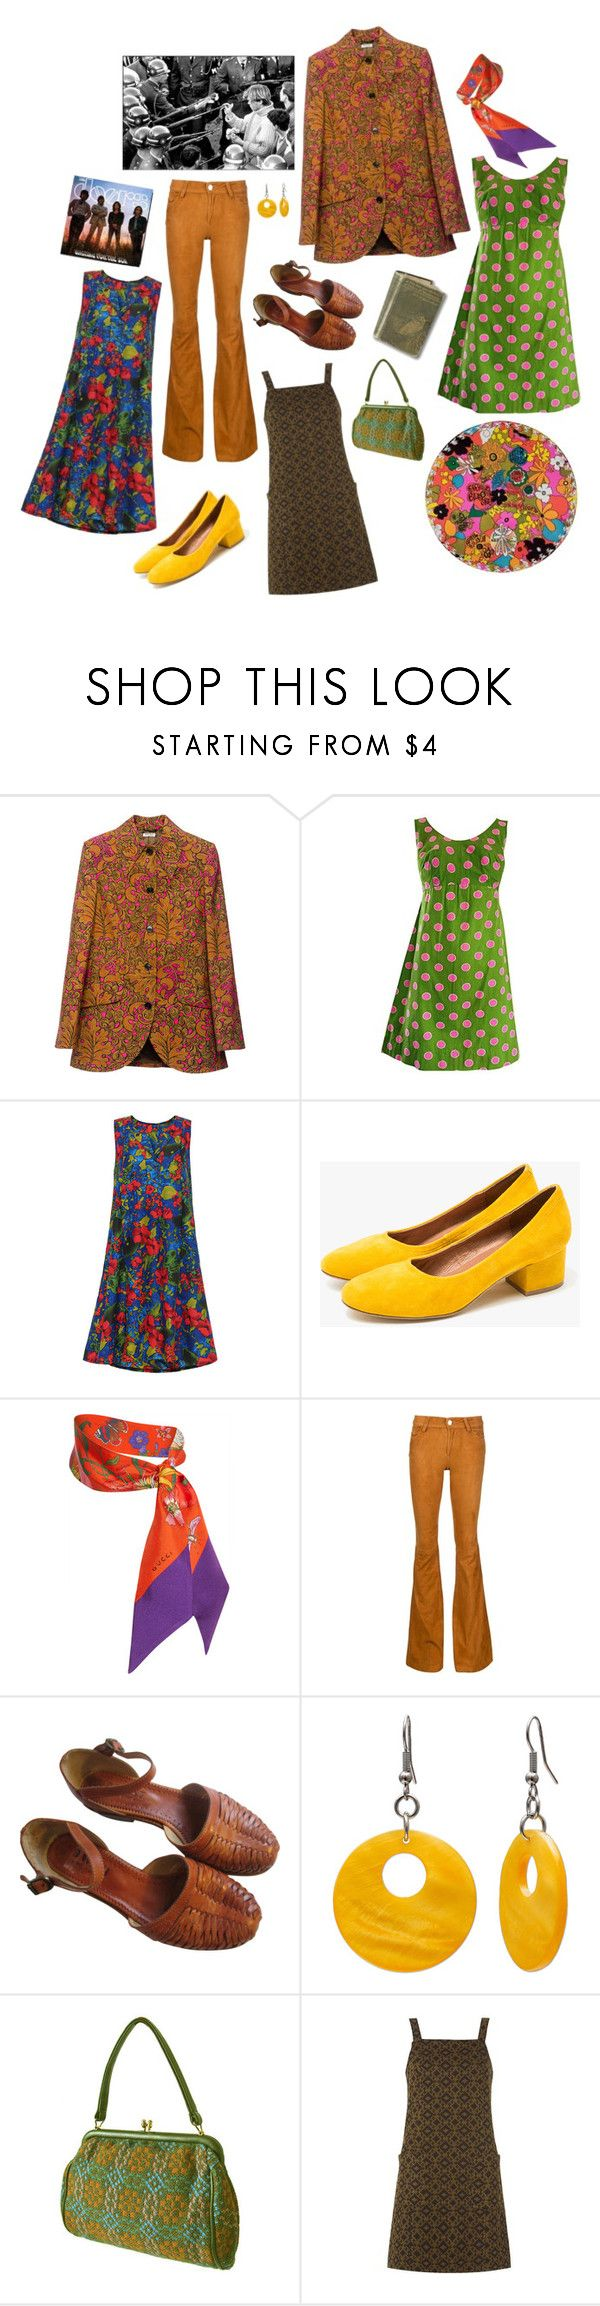 """""""Year 1968"""" by dulceelena ❤ liked on Polyvore featuring Miu Miu, Jeffrey Campbell, Gucci, Alice + Olivia, Mixit and Innocence"""